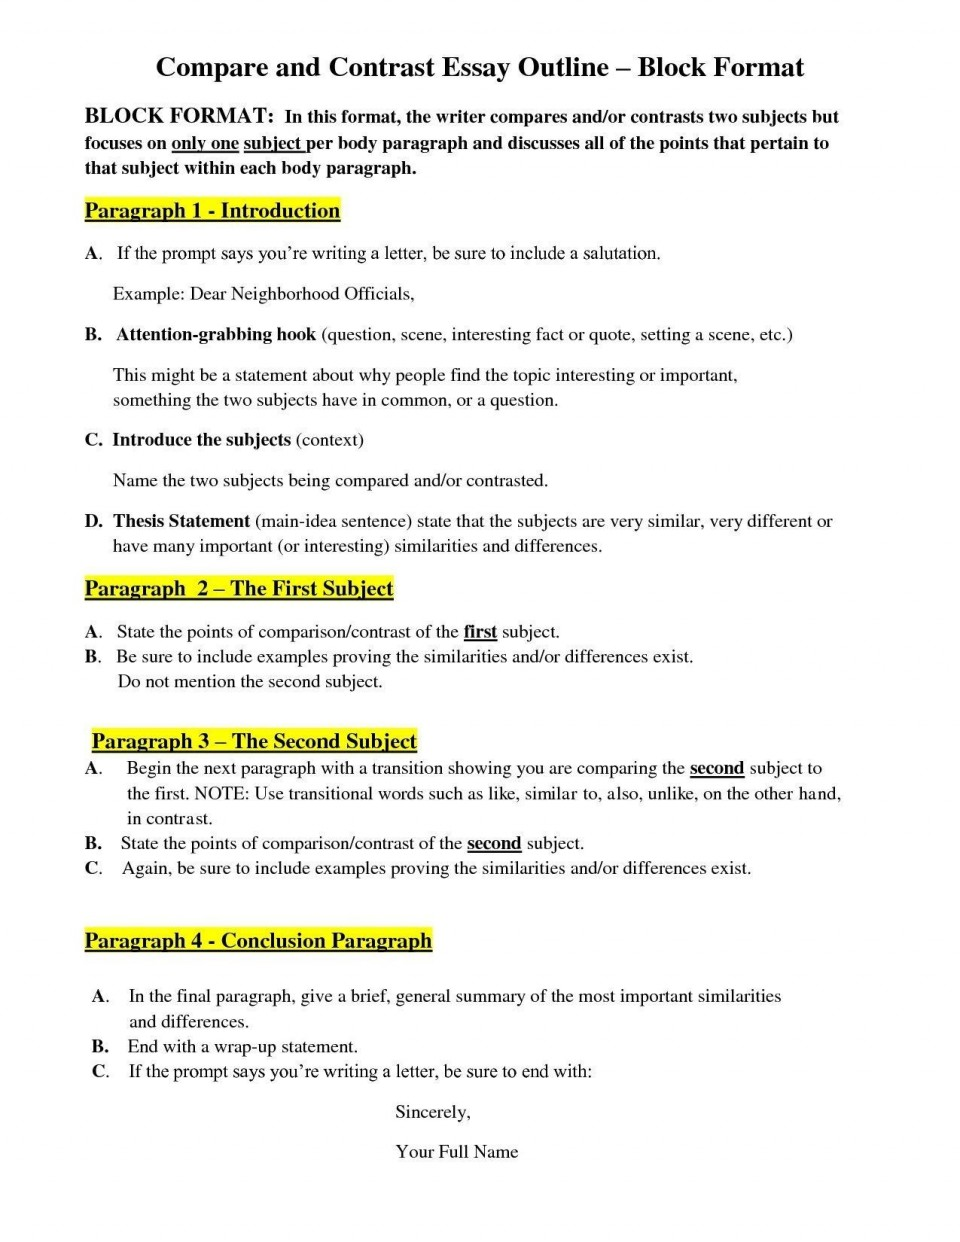 014 Essay Examplempare Andntrastmparison Best Examples Of Scenario In 6th Grade An Goo 3rd Food 5th Middle School Block Format Pdf High 4th Vs Striking Compare And Contrast Example For College Students Topics 7th 960